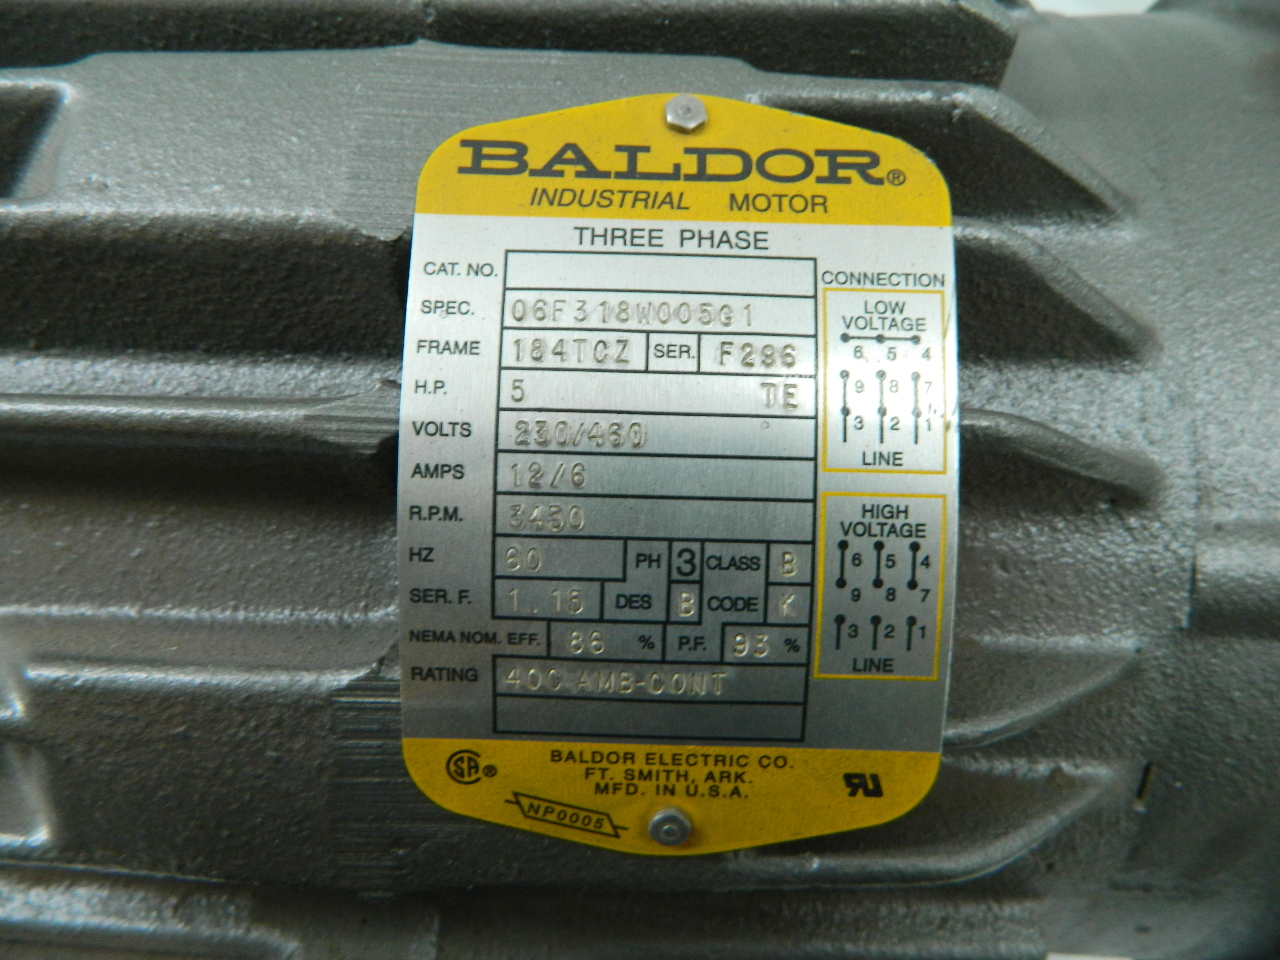 Baldor 10 hp electric motor wiring diagram for 3 phase 3hp motor